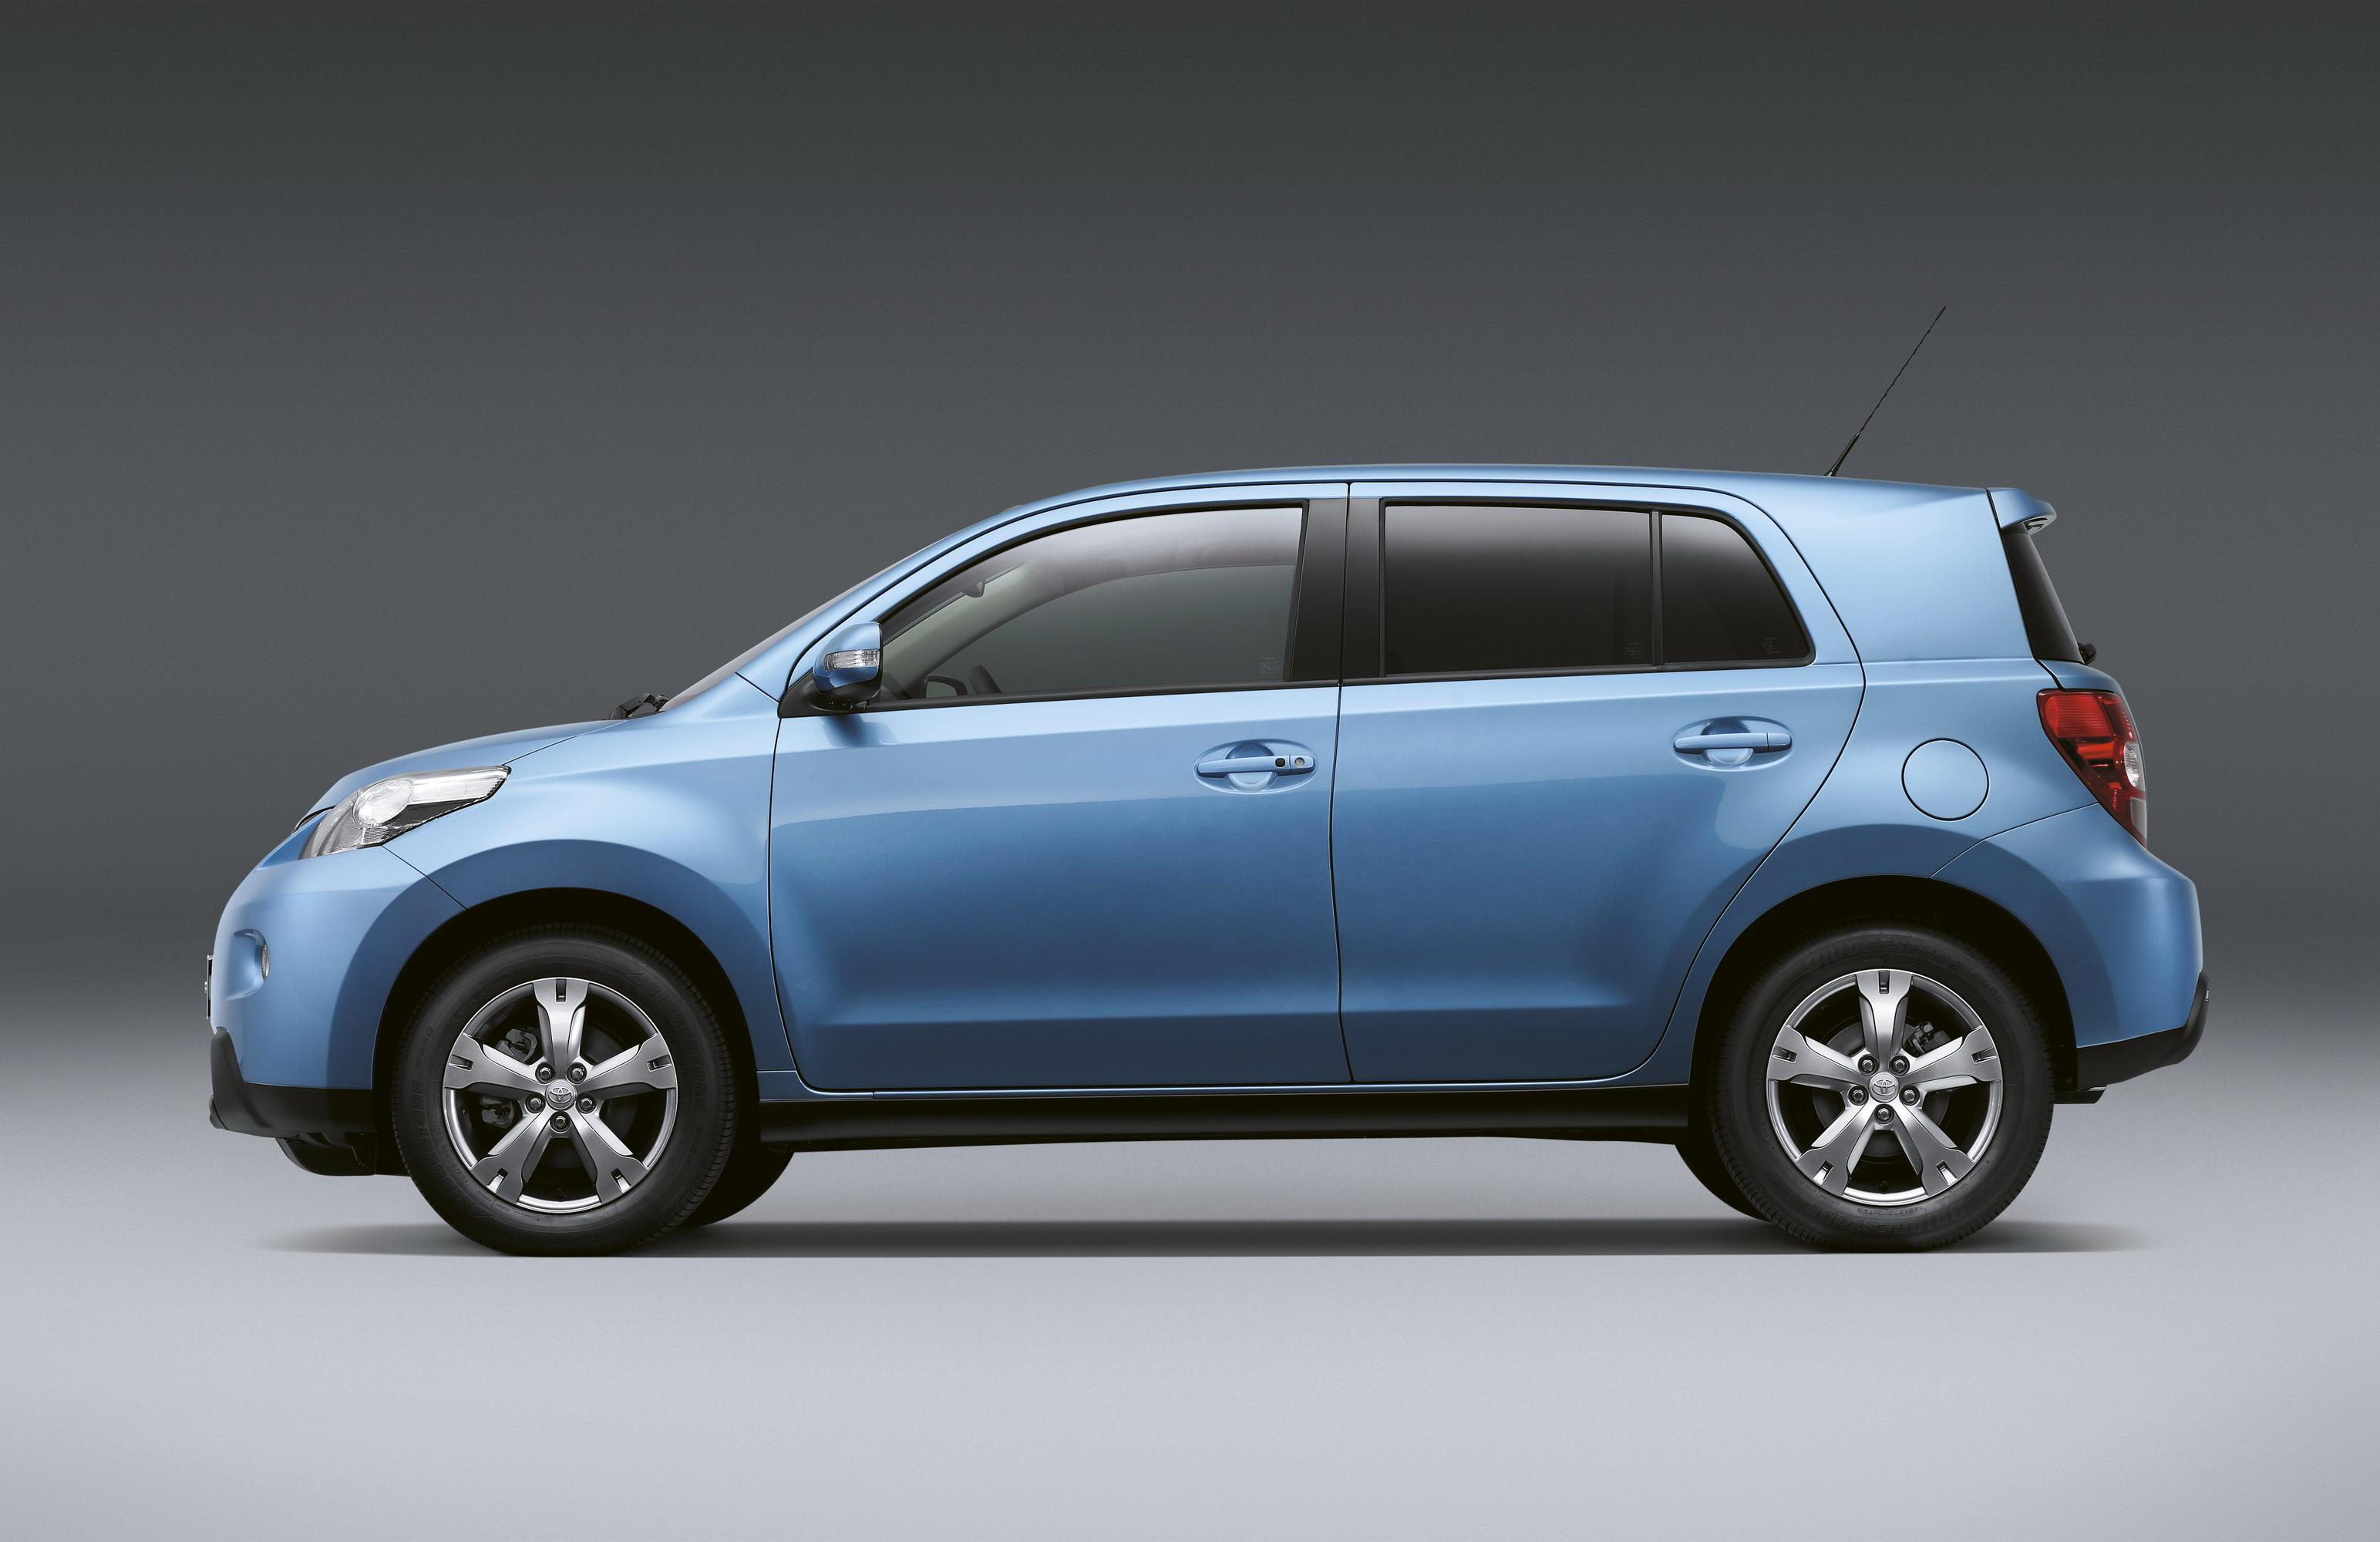 Toyota Urban Cruiser News And Reviews | Top Speed. »